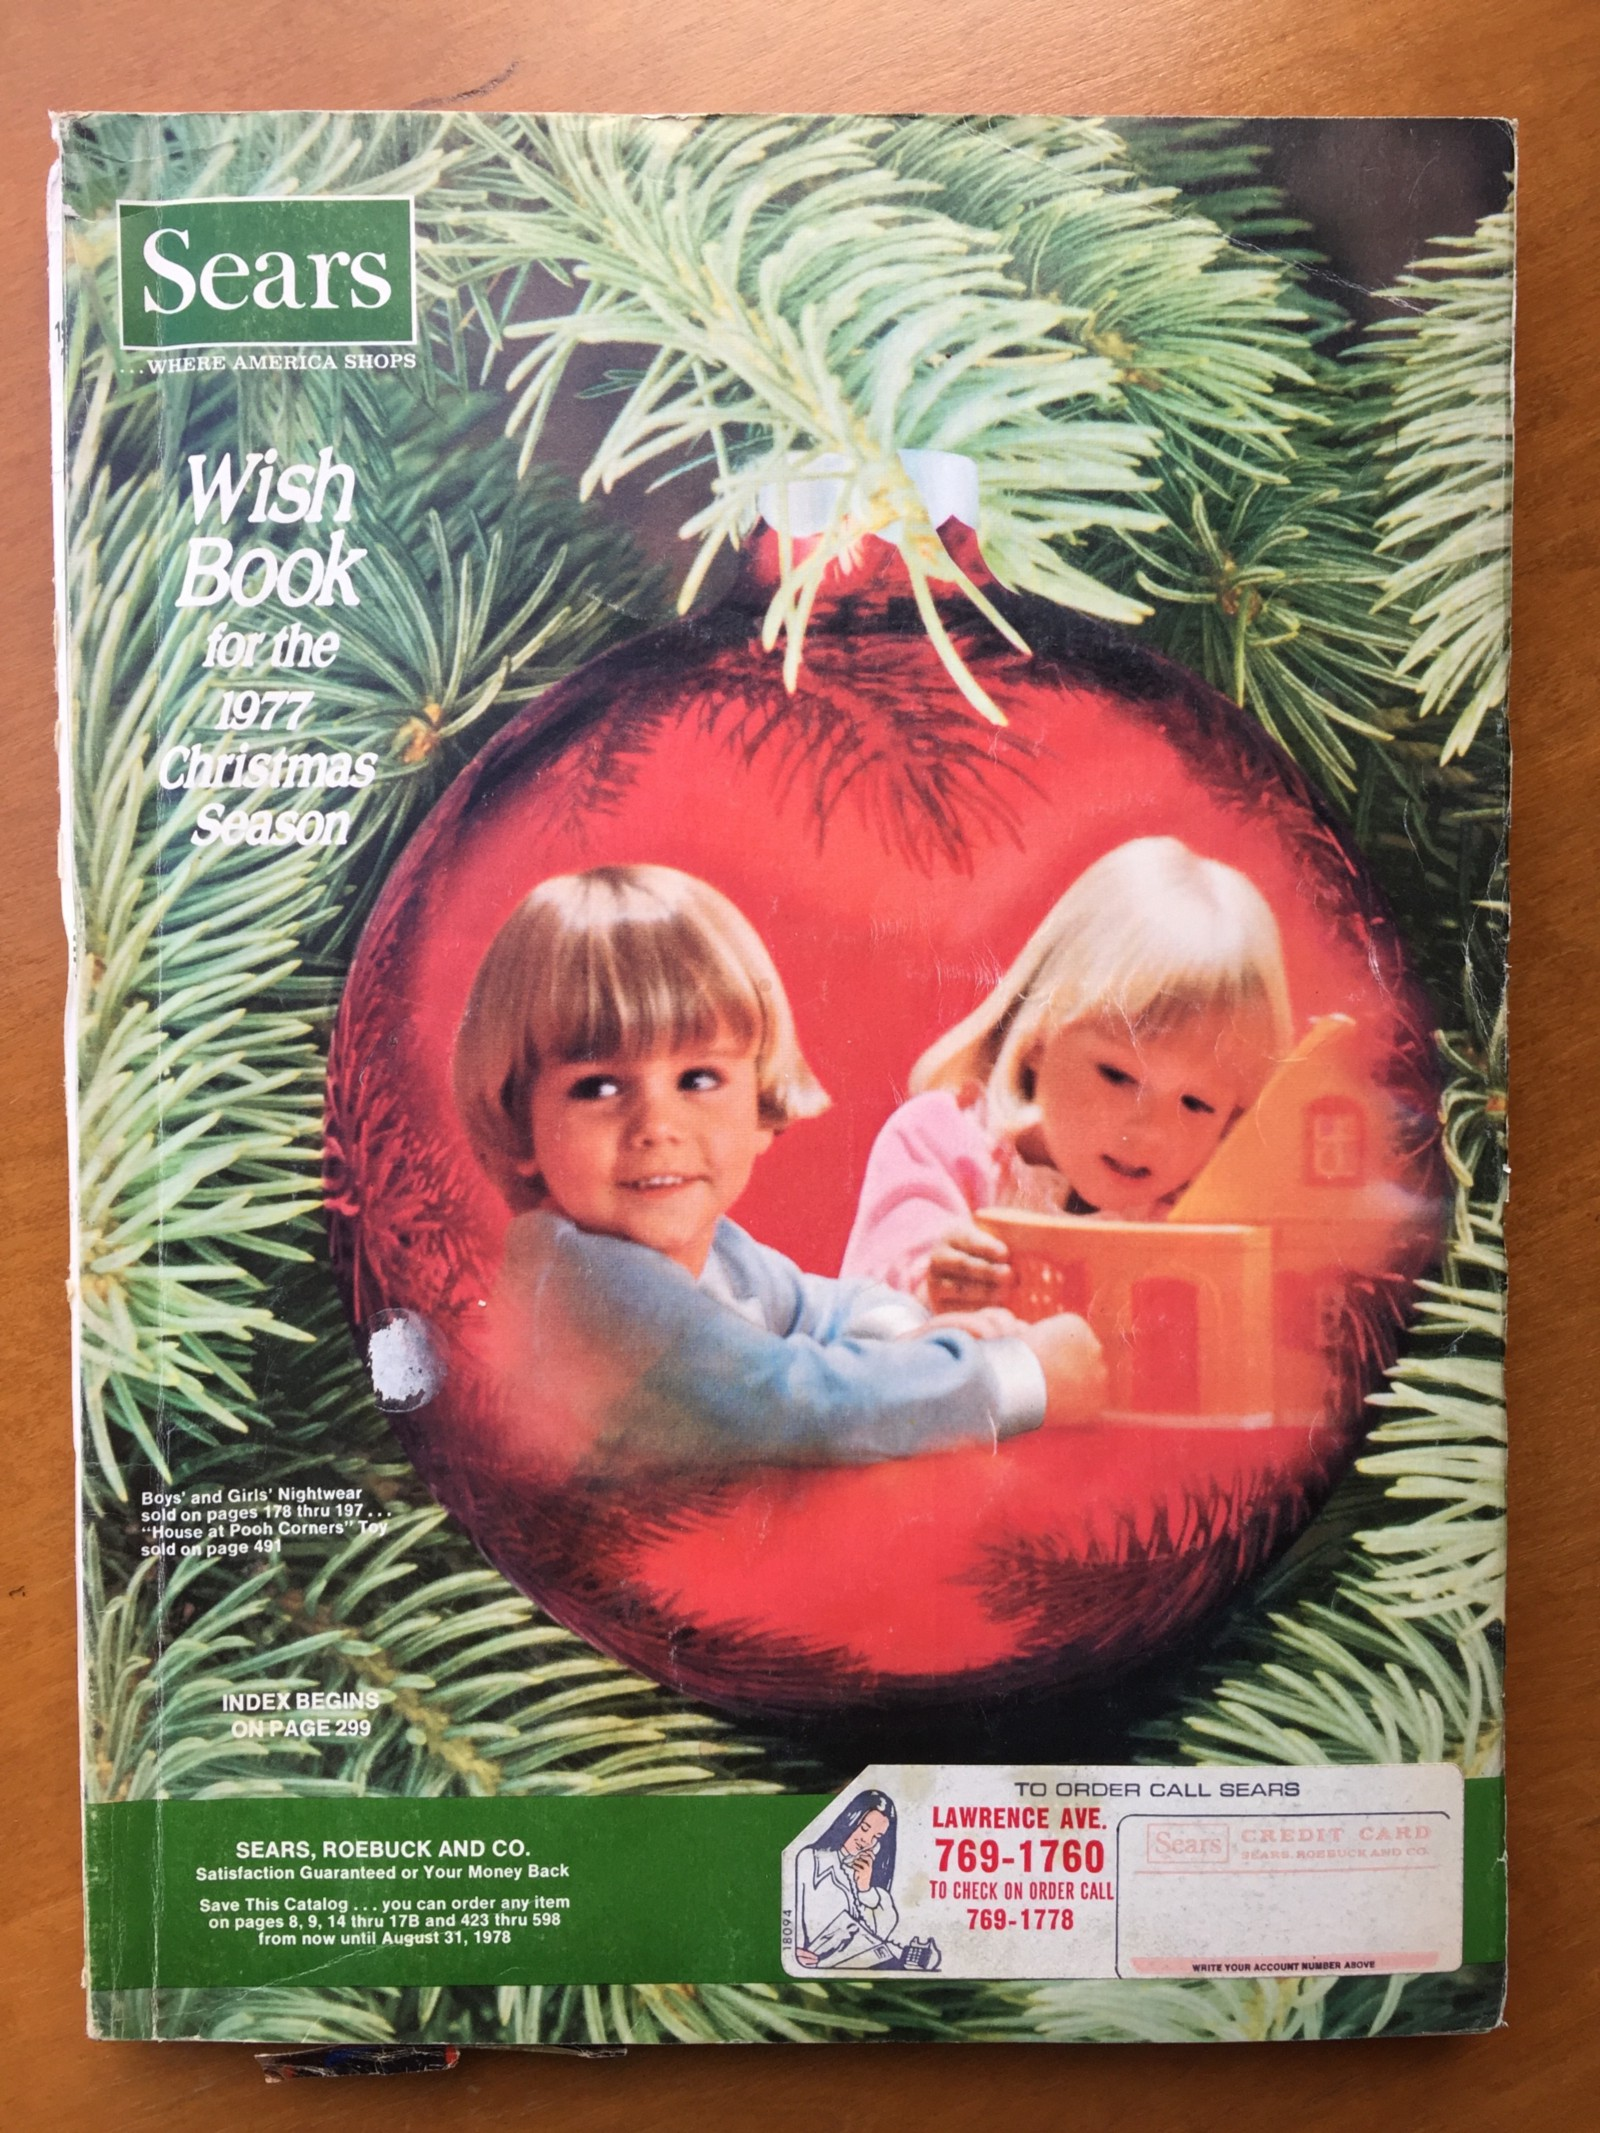 296131da1 A Journal of Musical ThingsRewind to 1977: The Sears Christmas Wishbook - A  Journal of Musical Things